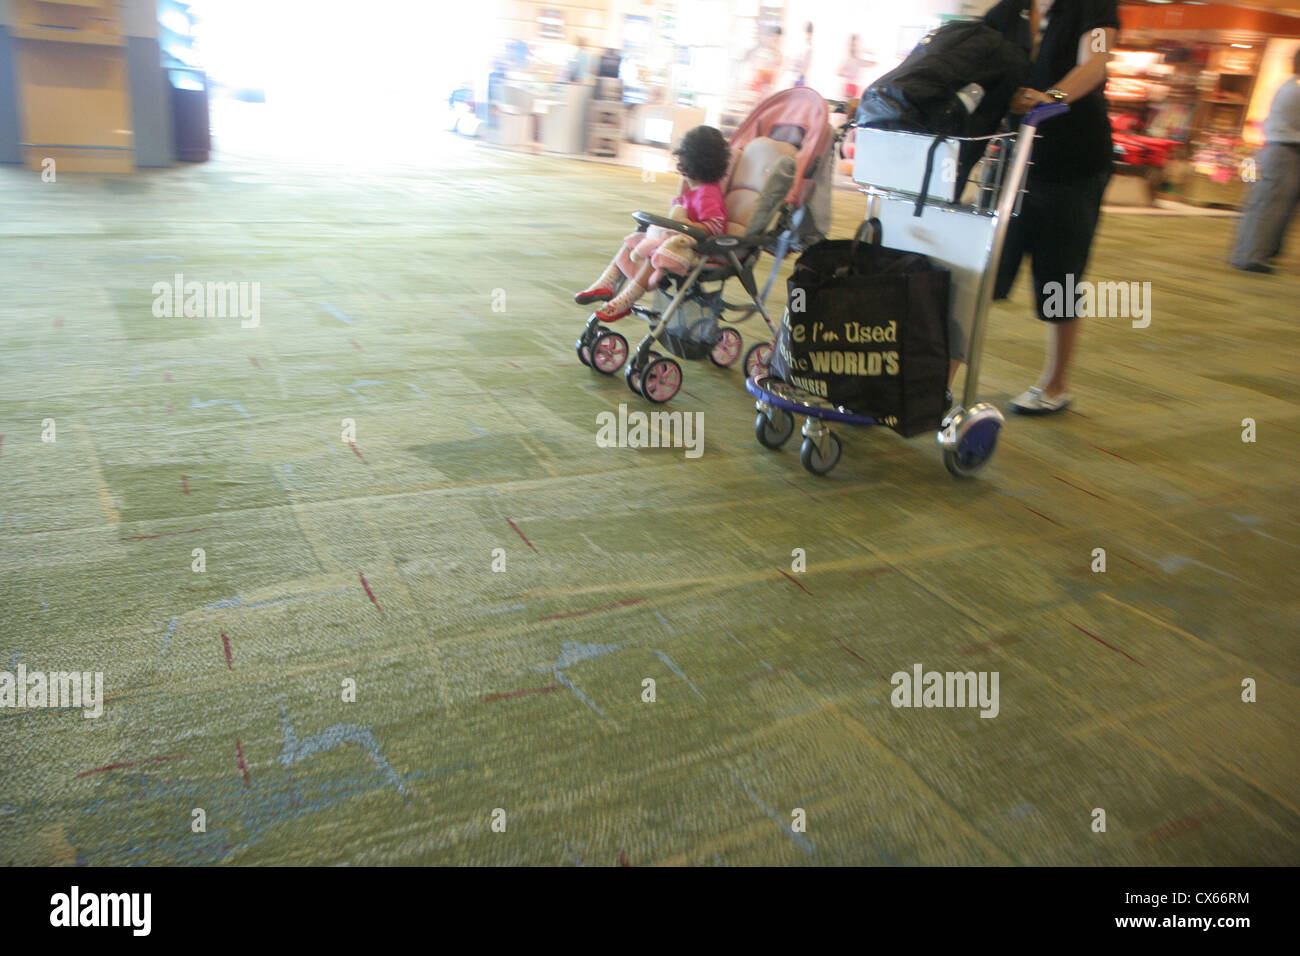 Woman push a toddler cart and baggage cart simultaneously in Changi International Airport, Singapore. - Stock Image